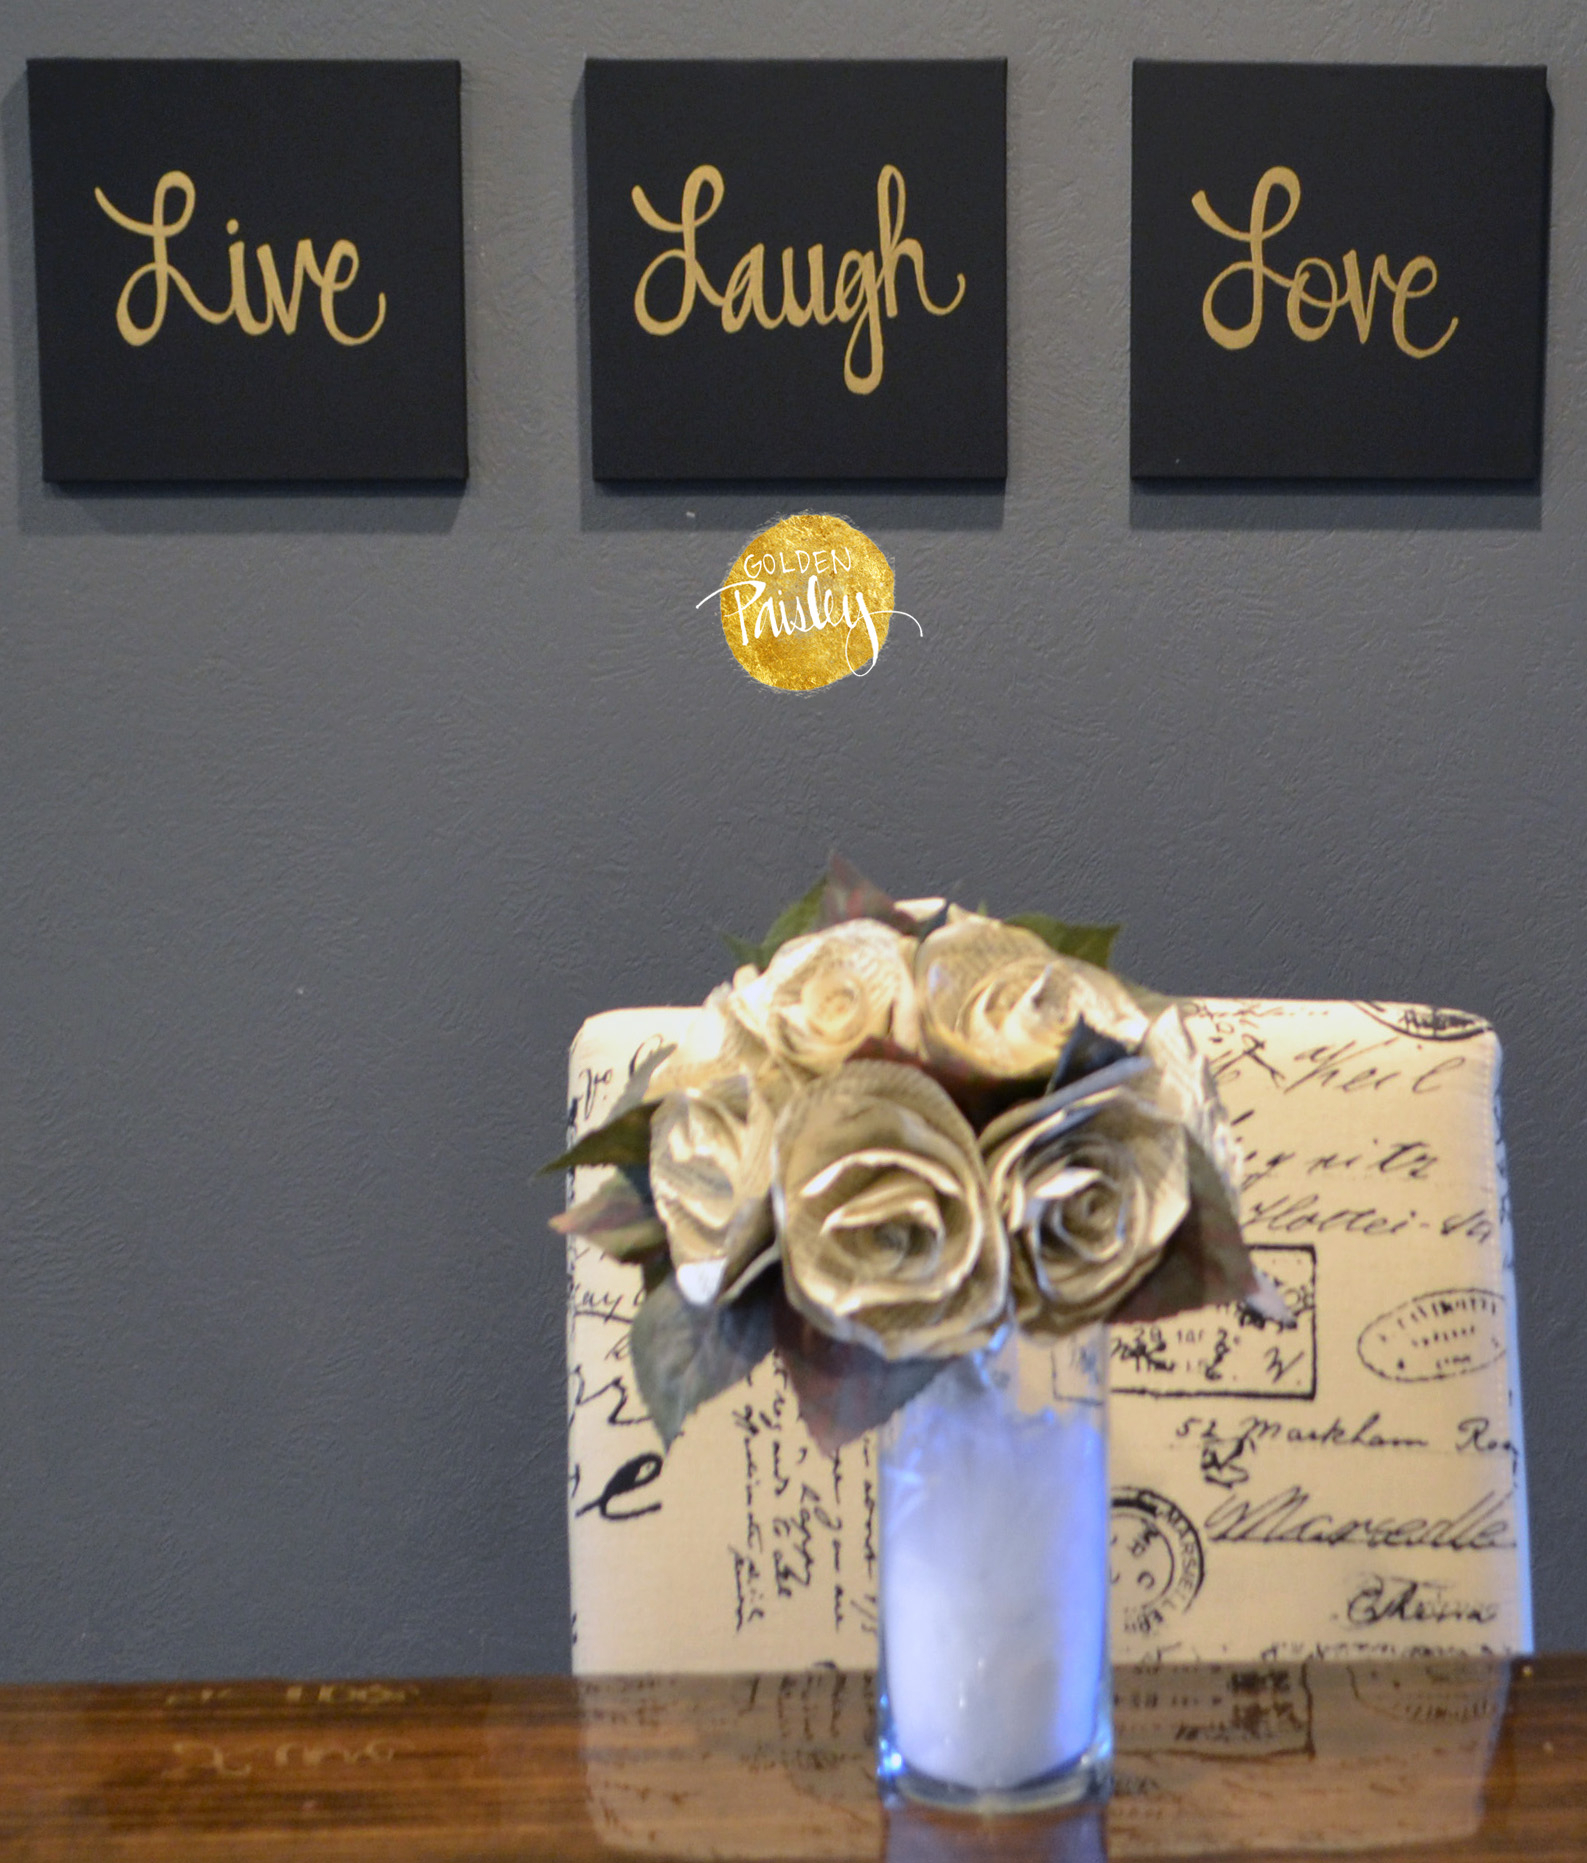 Live Laugh Love Black & Gold 3 Piece Wall Decor Set Throughout Live Love Laugh 3 Piece Black Wall Decor Sets (View 3 of 30)